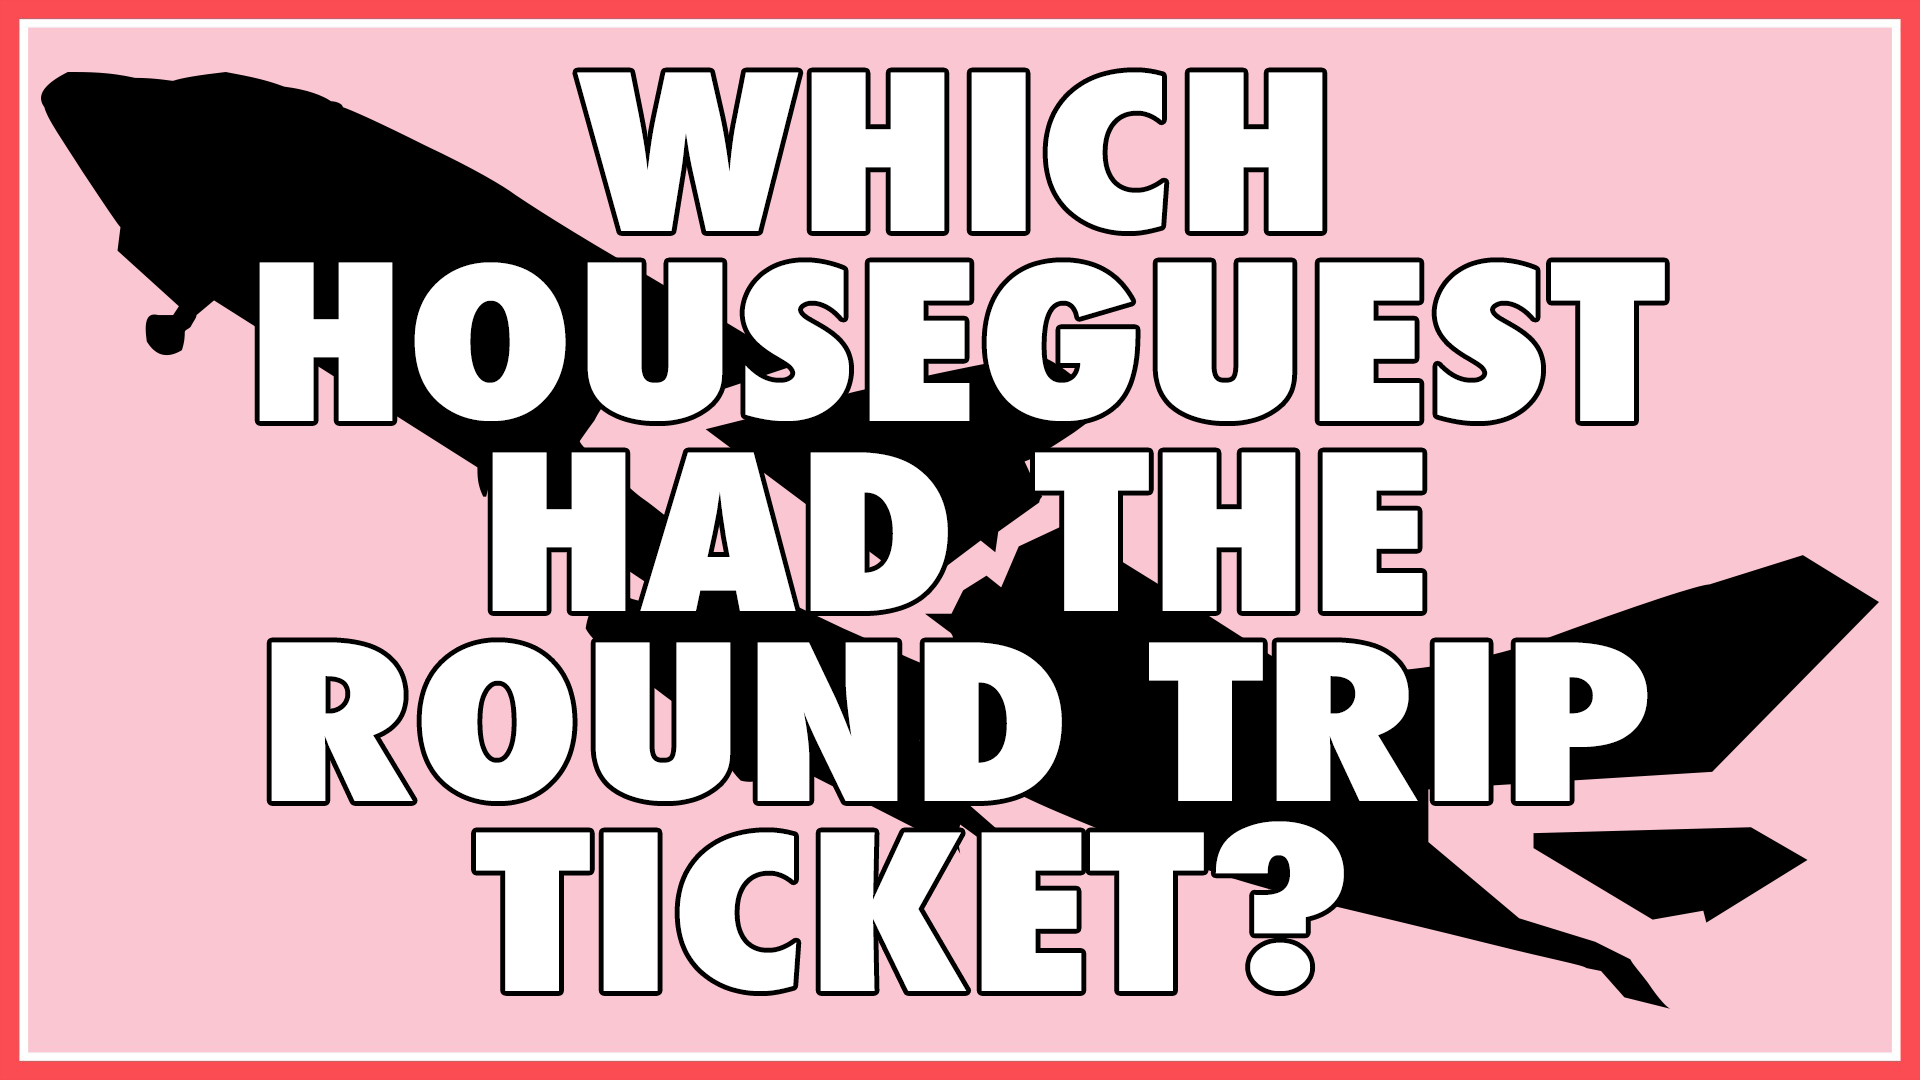 Which Houseguest had the round trip ticket?